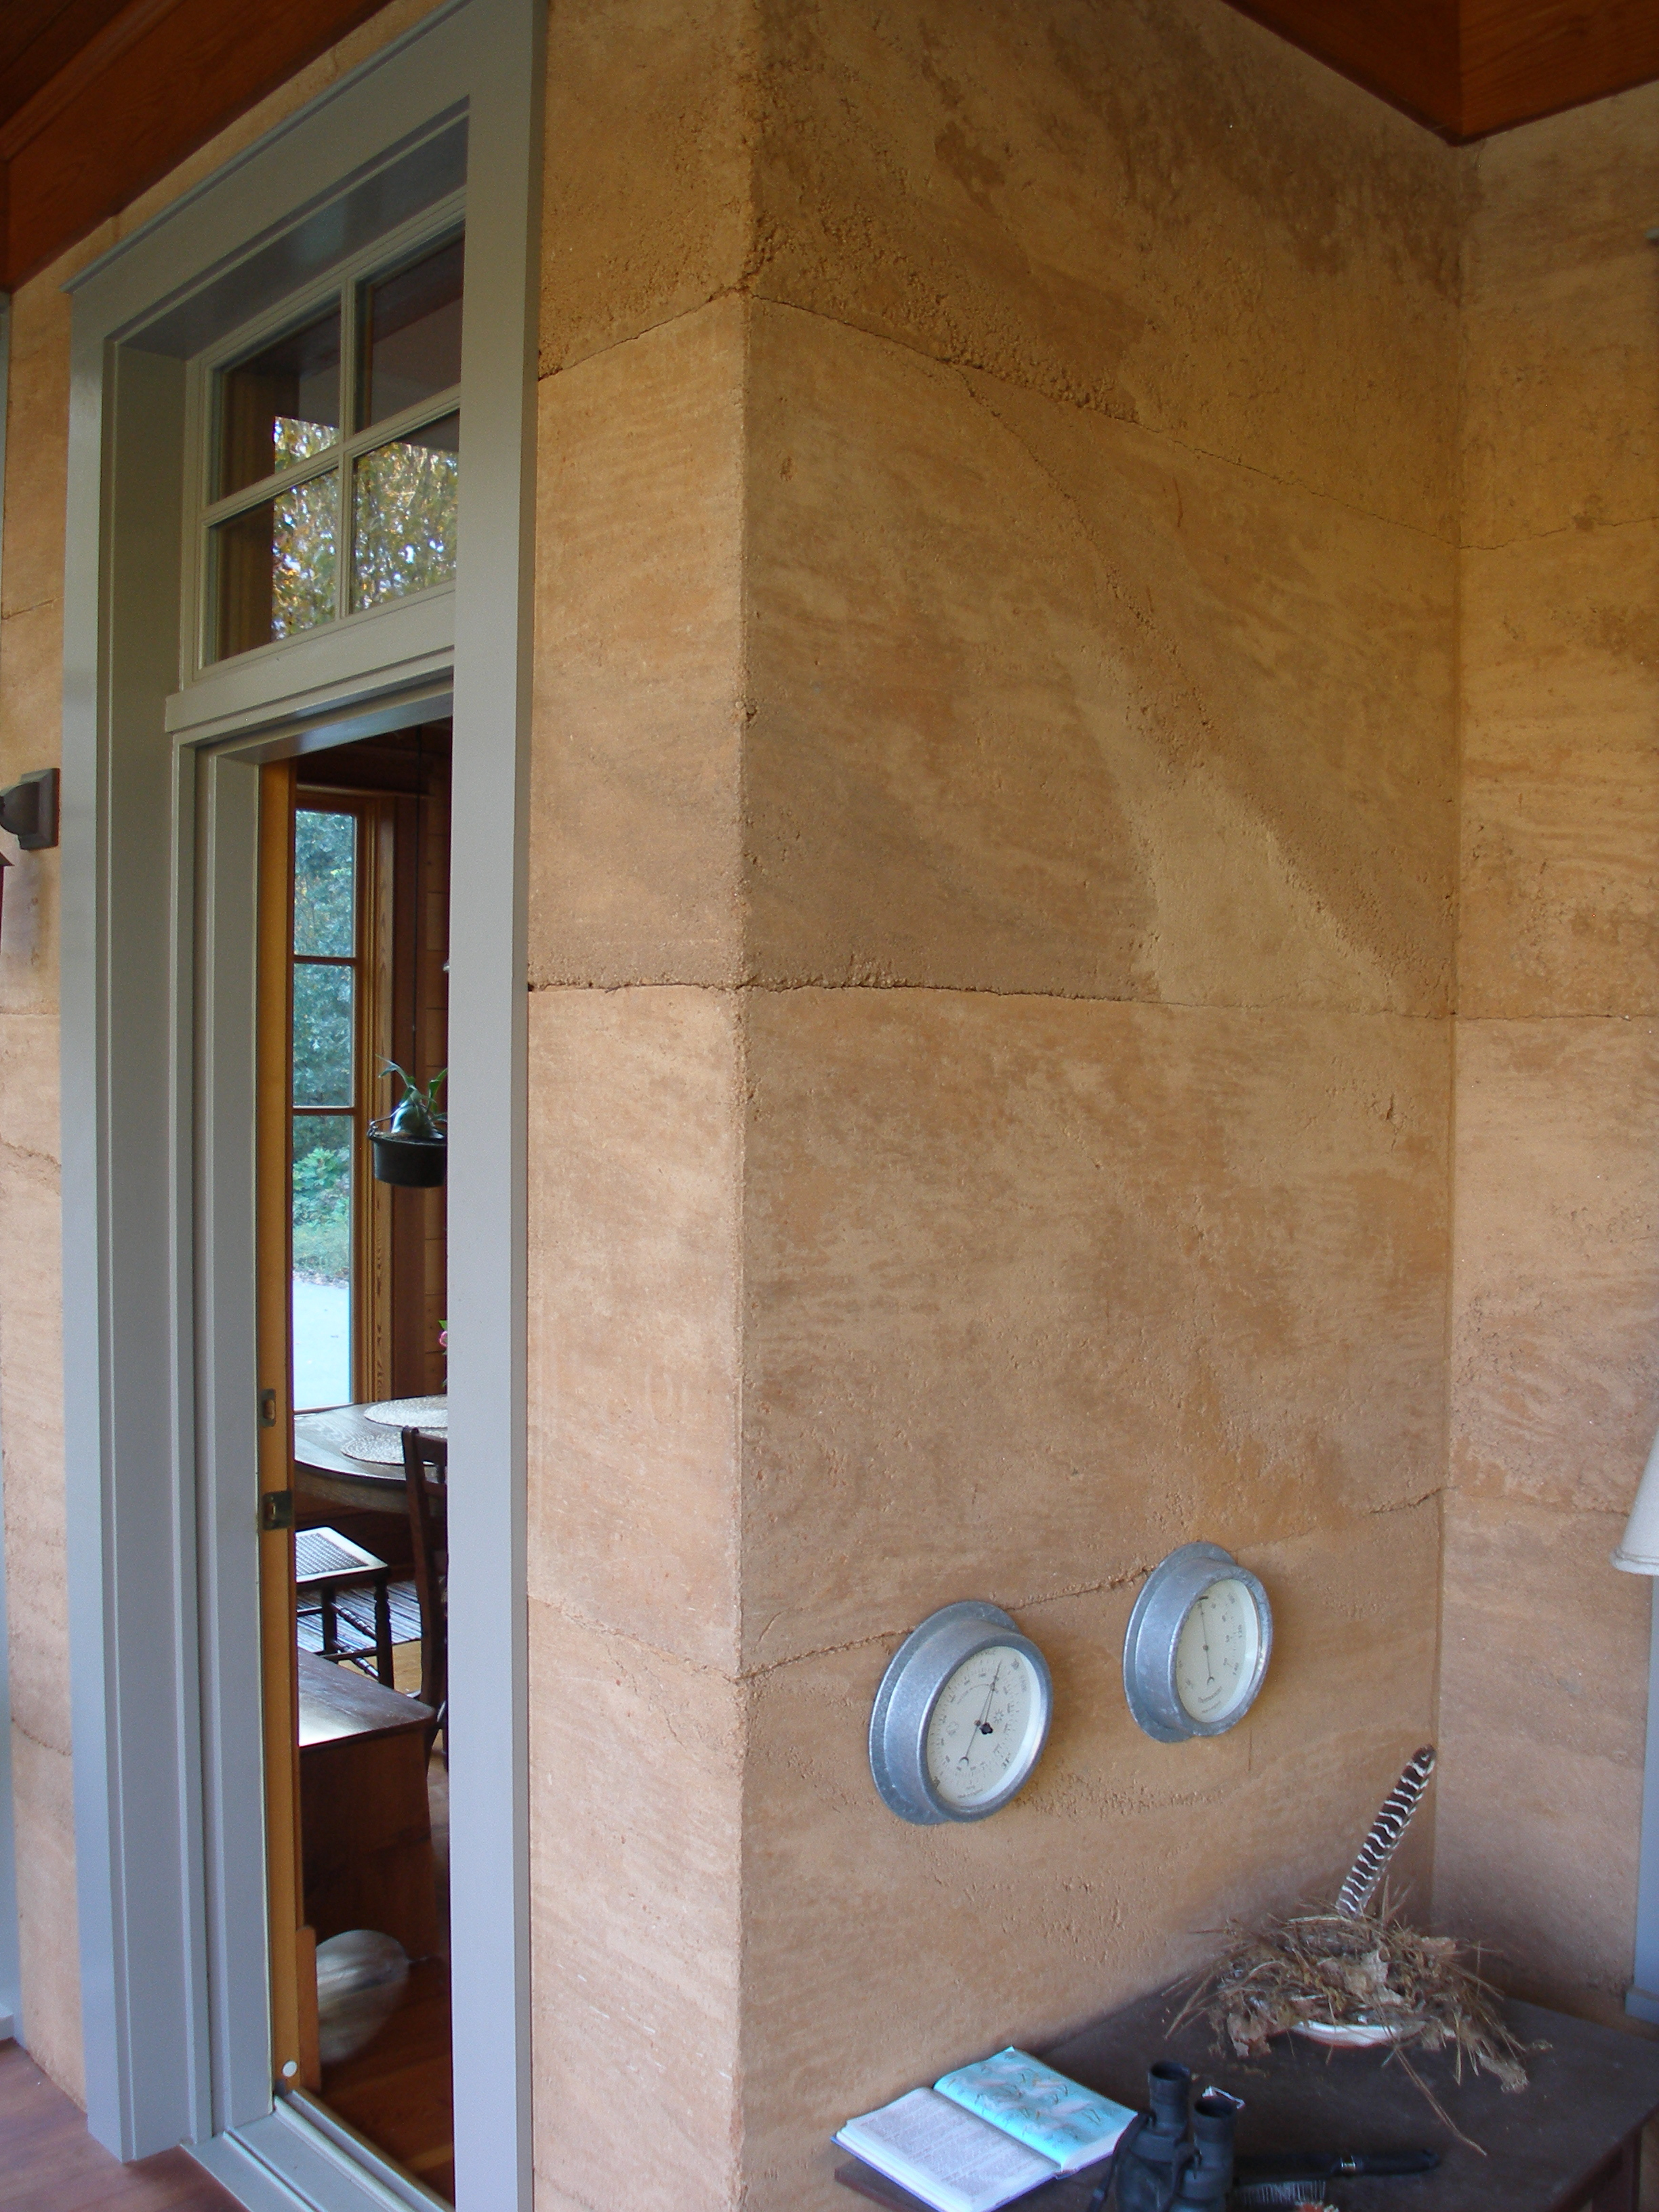 Detail of rammed earth walls.